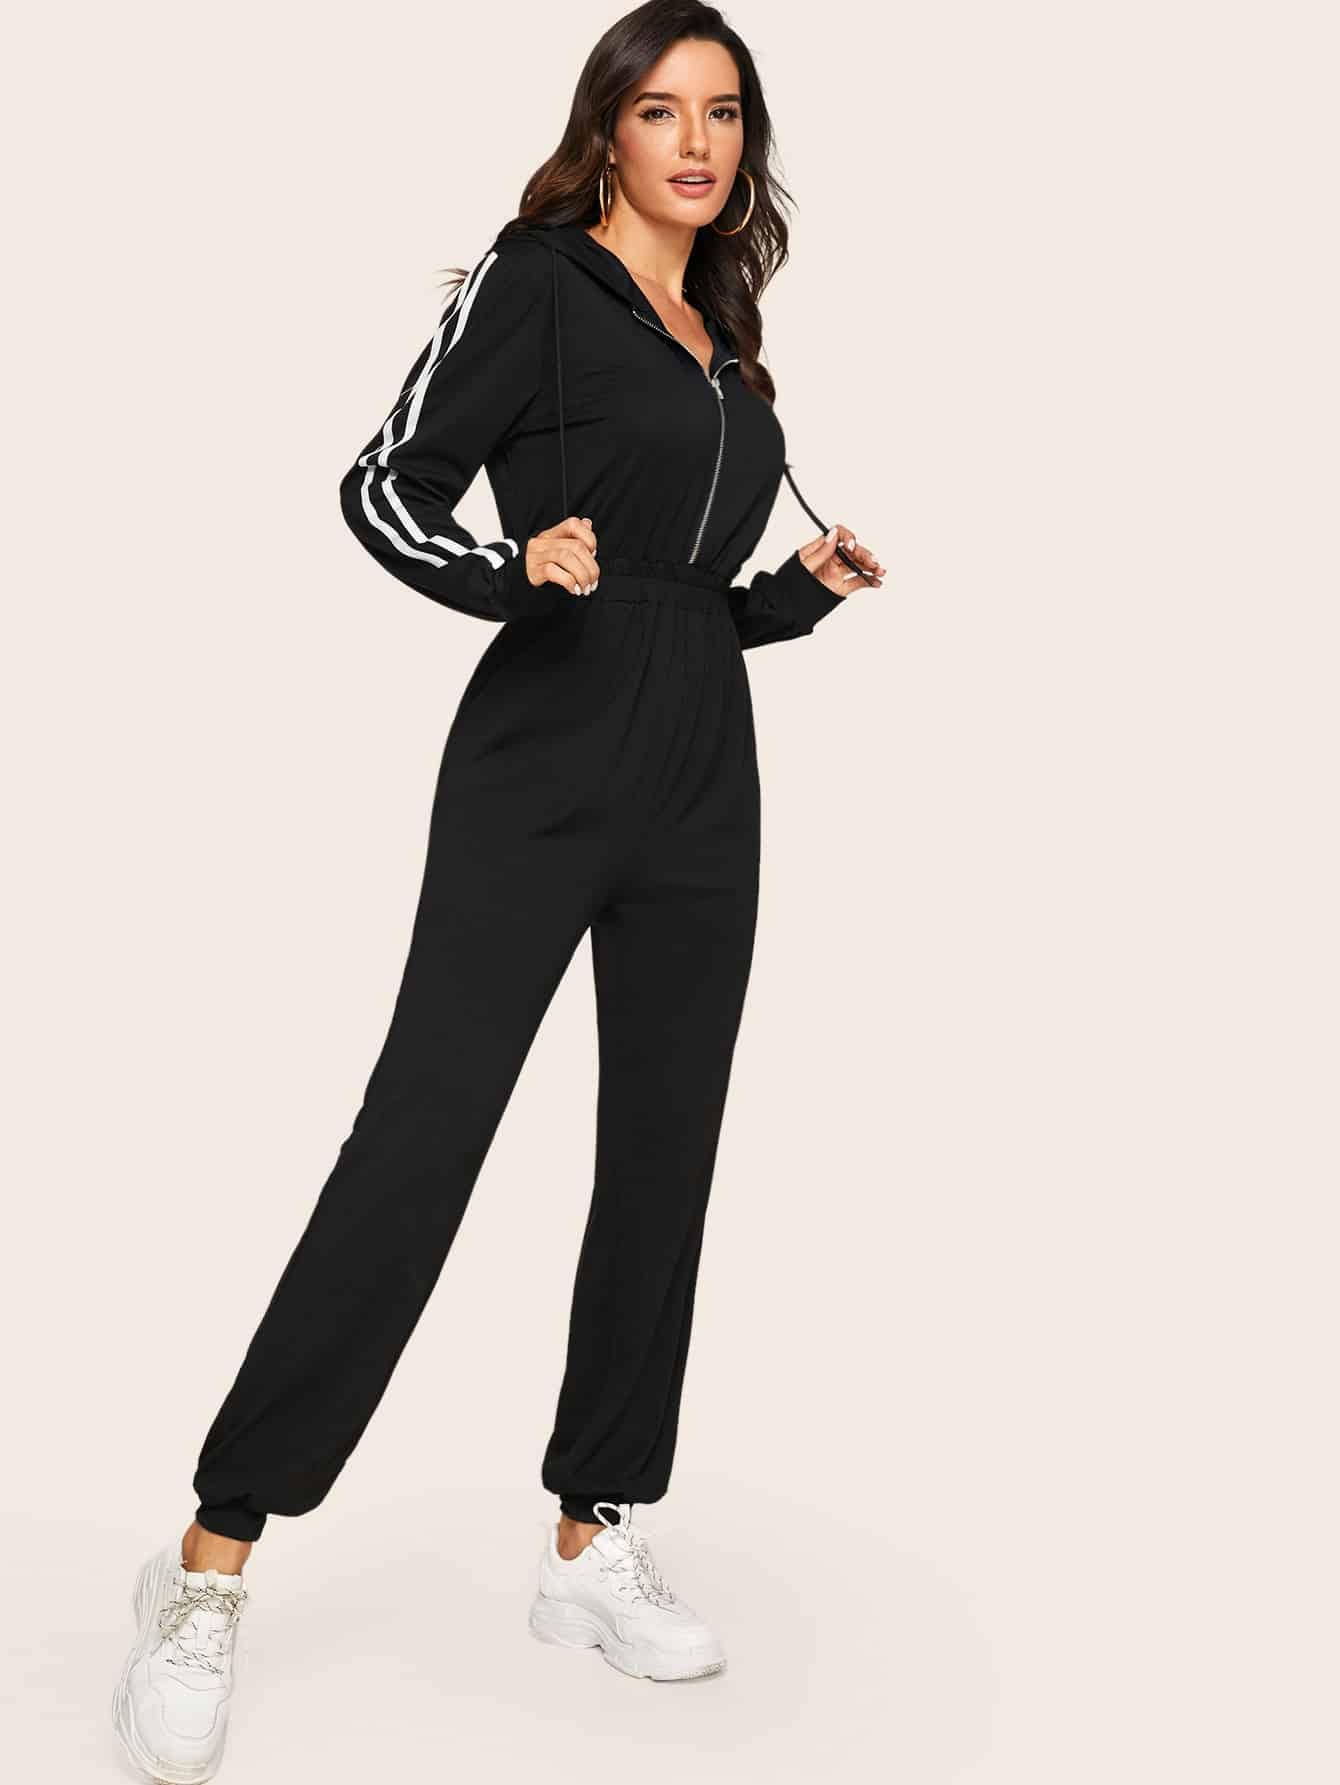 Striped Side Zip Front Drawstring Hooded Jumpsuit - FLJ CORPORATIONS